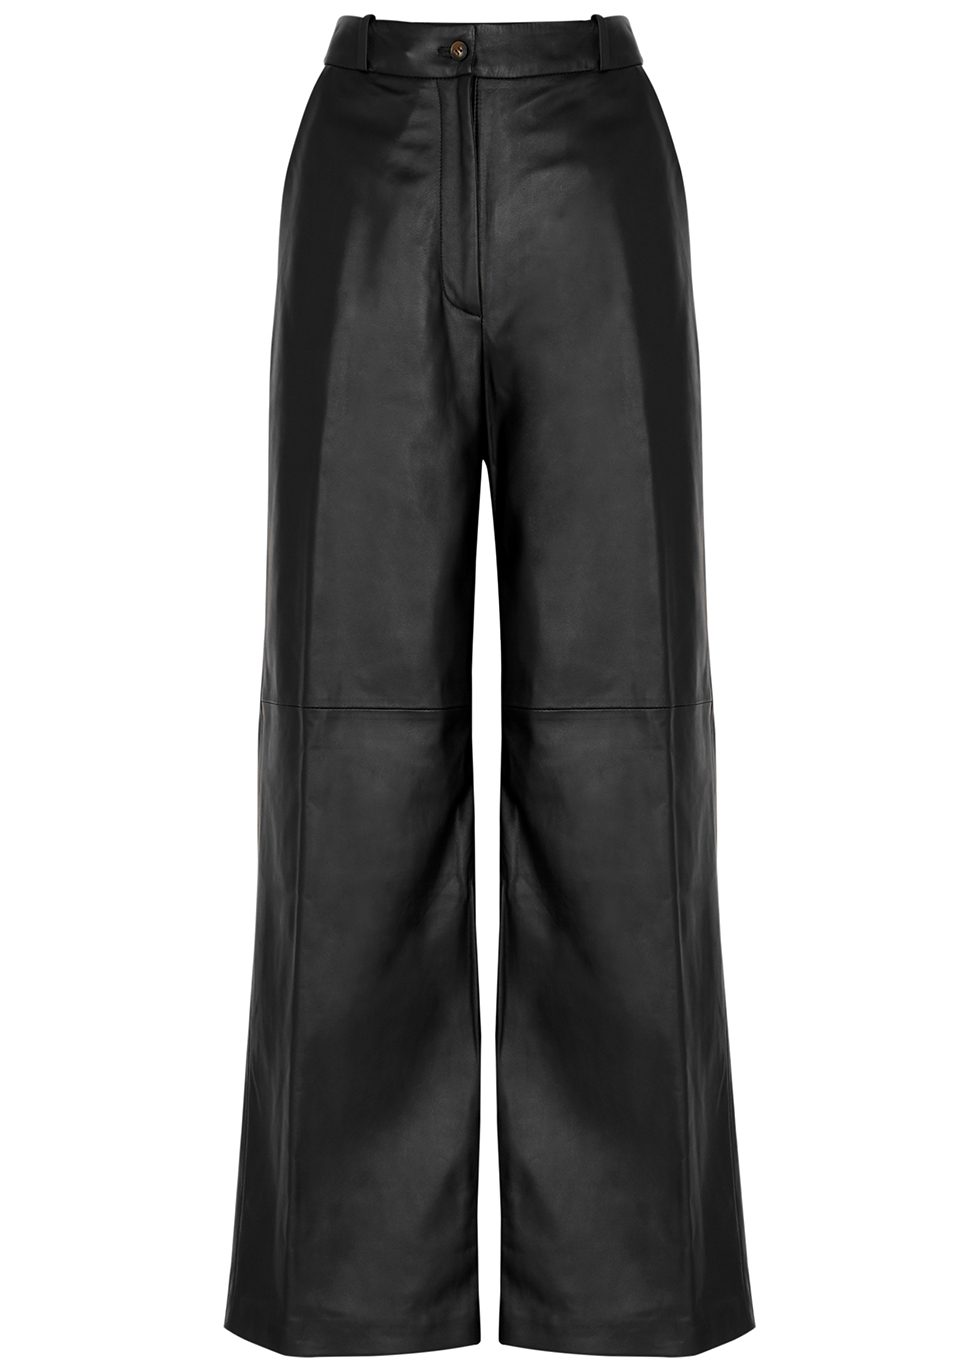 Noro black wide-leg leather trousers